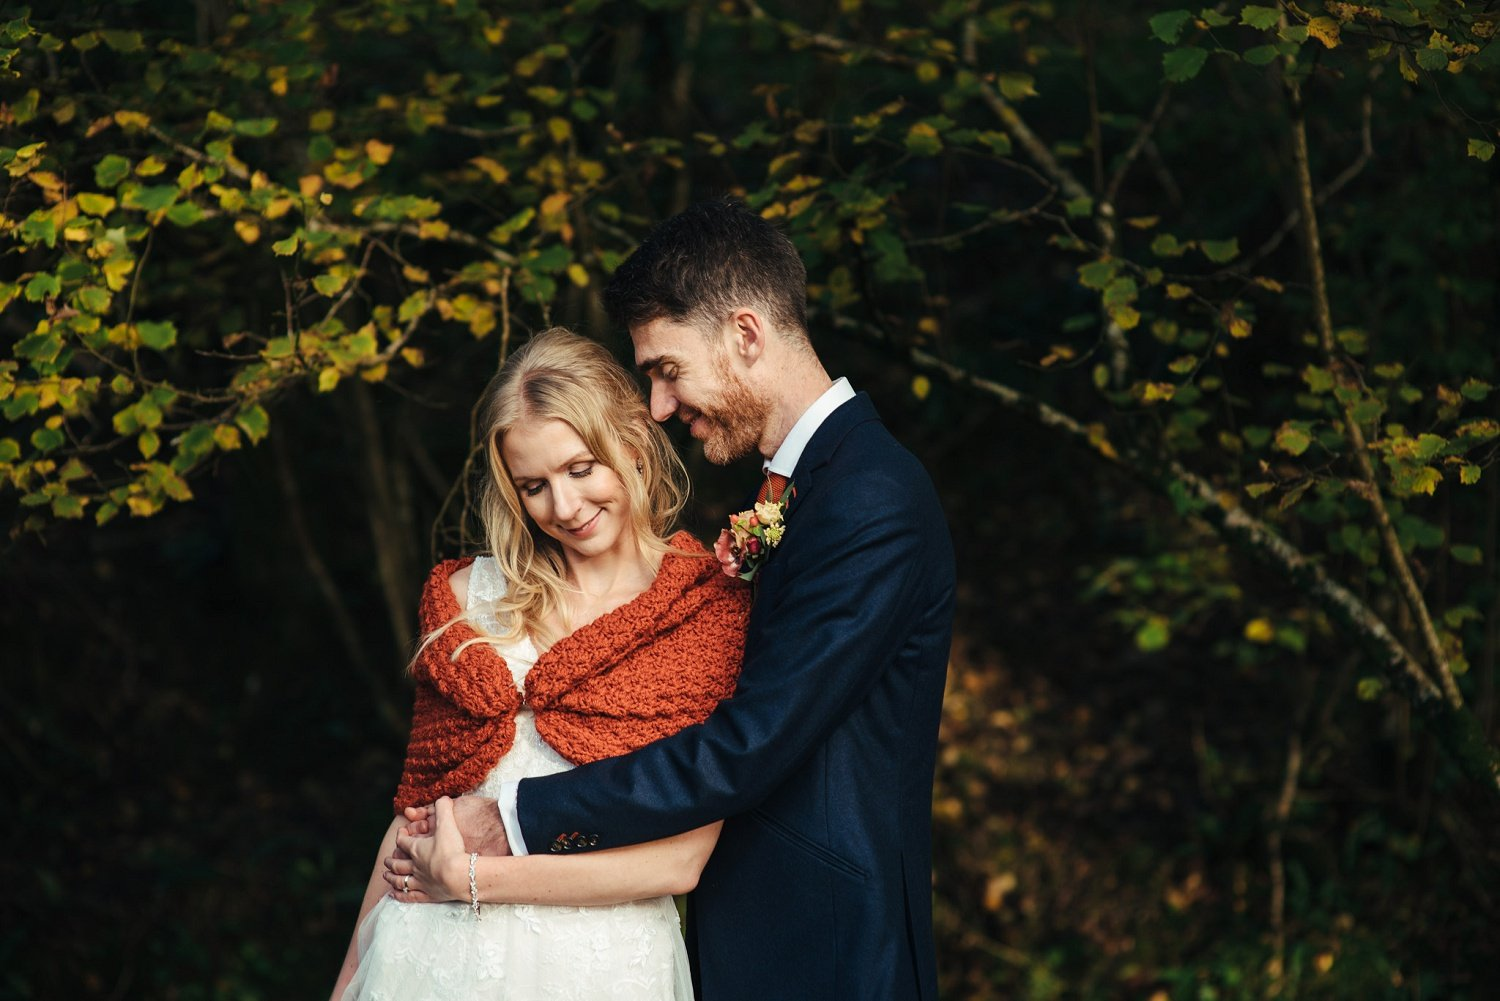 Boho bride wearing a teracotta knitted shawl enjoys being in her groom's arms